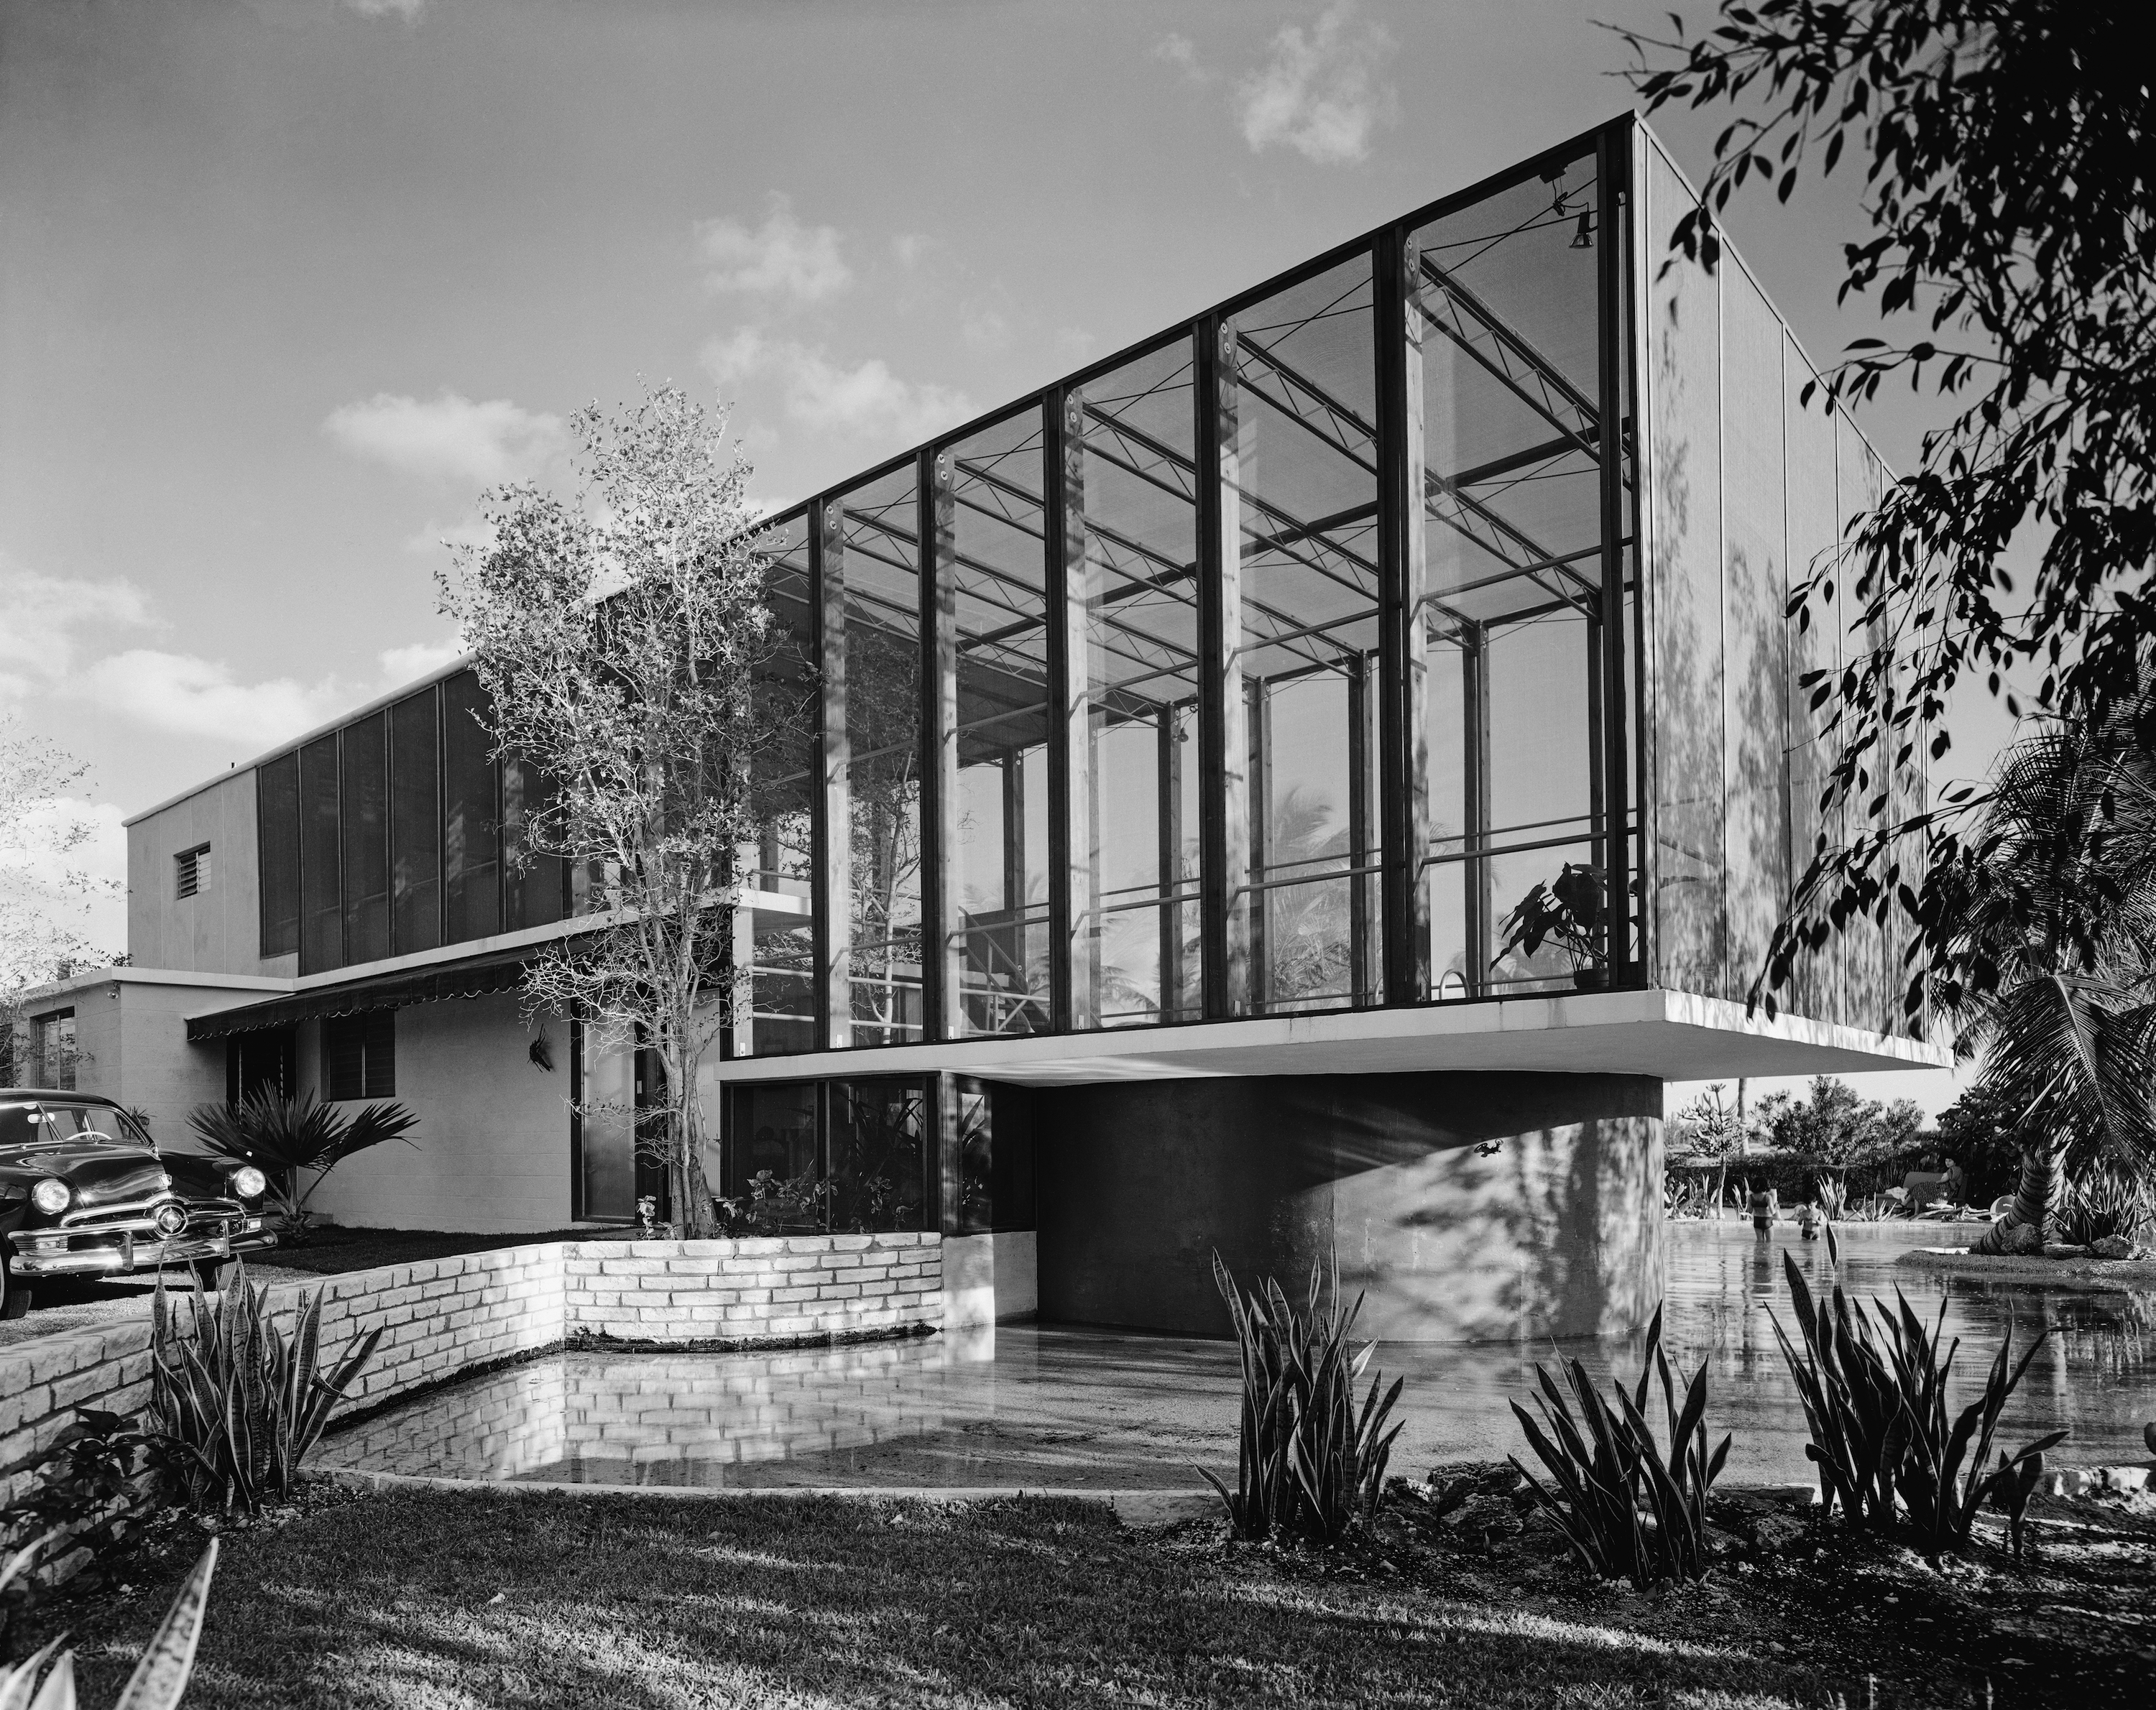 Black and white photograph showing a modern building with large glass wall.